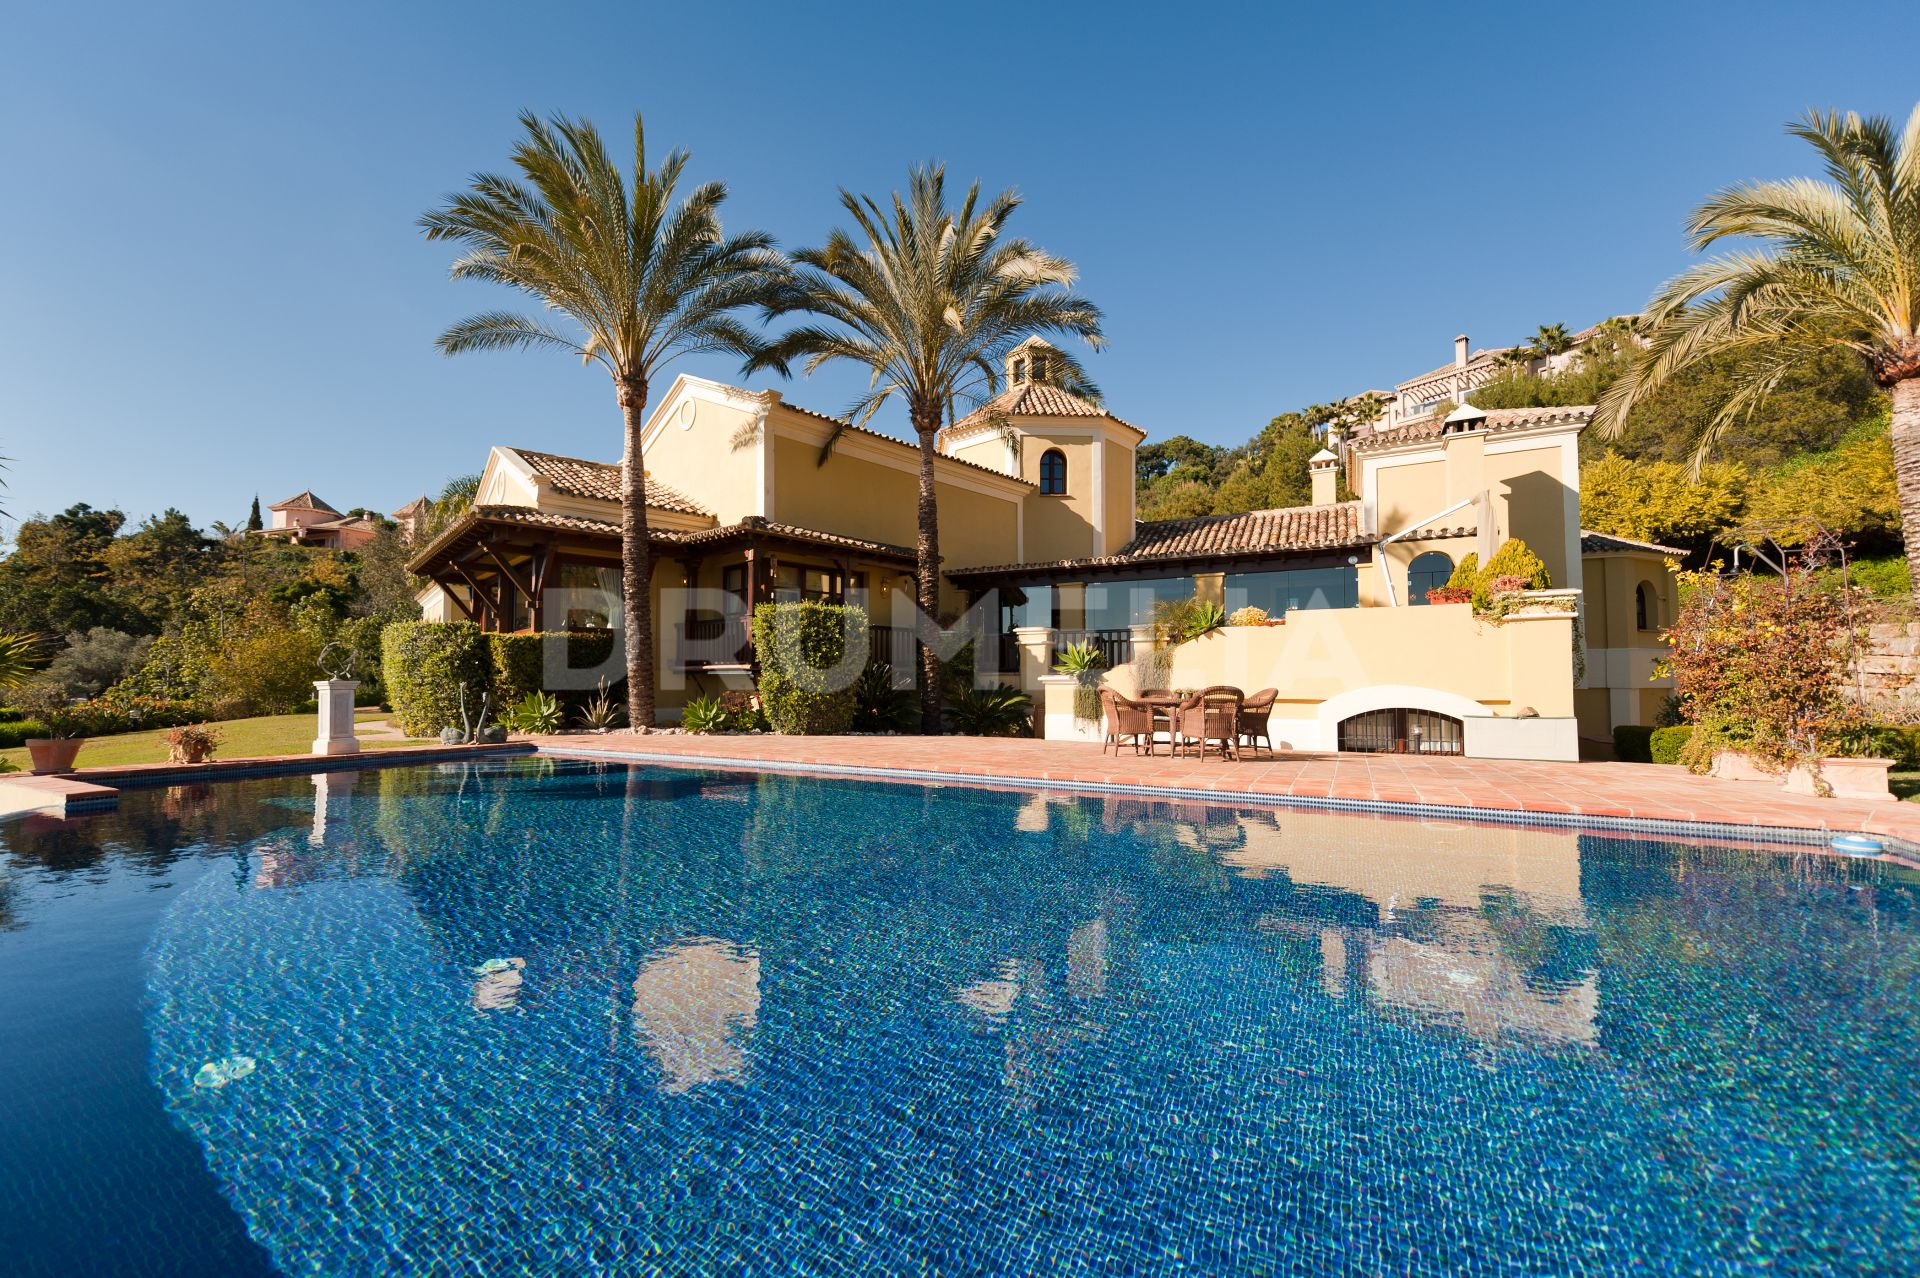 Benahavis, Classic Spanish Luxury Villa with Captivating Charm in Zagaleta